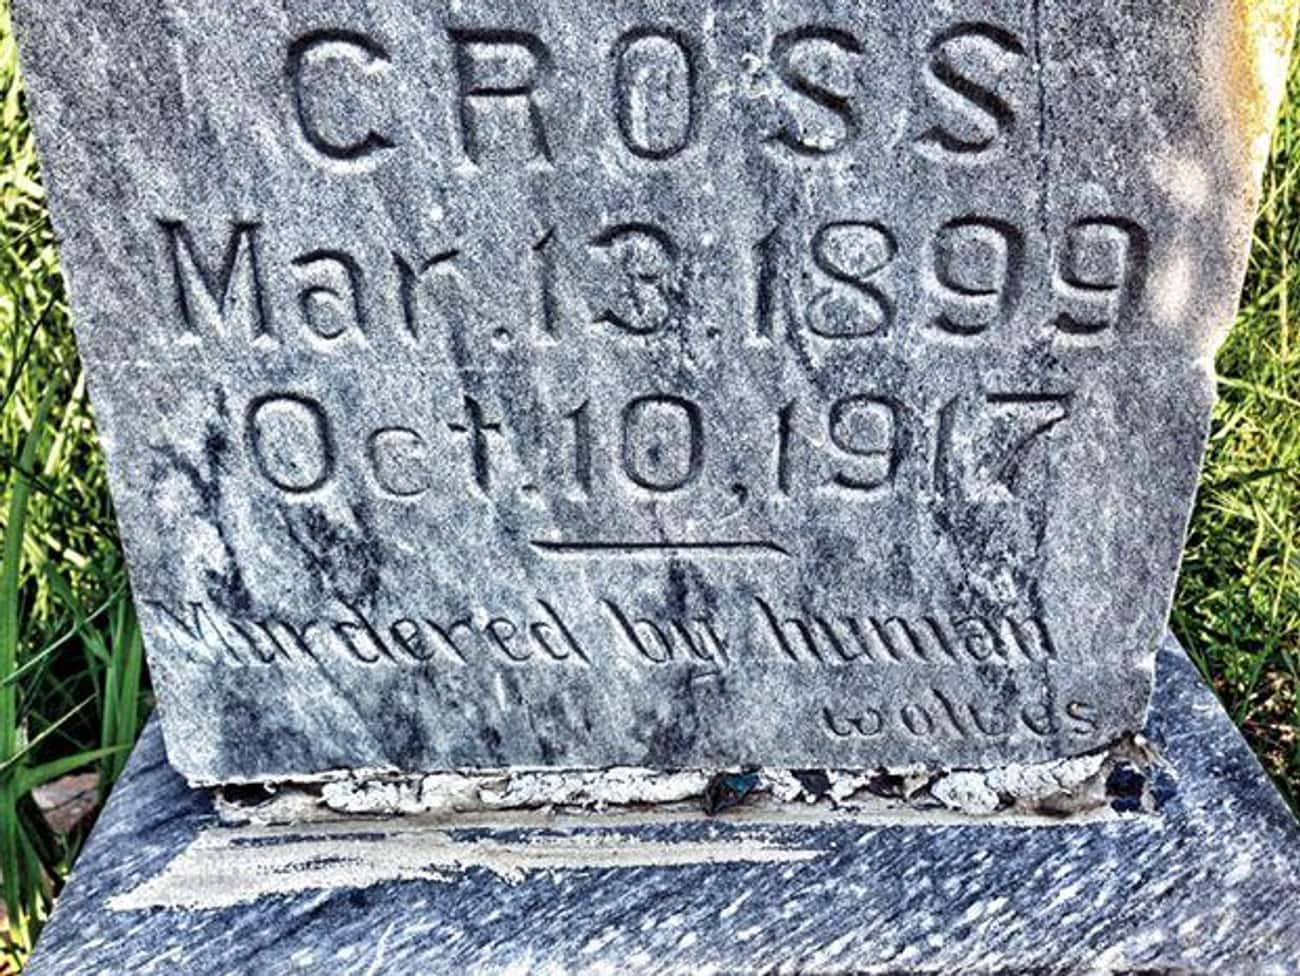 This Teen Done In By 'Huma is listed (or ranked) 2 on the list These Cryptic Messages On Tombstones Only Hint At Their Terrifying Backstories